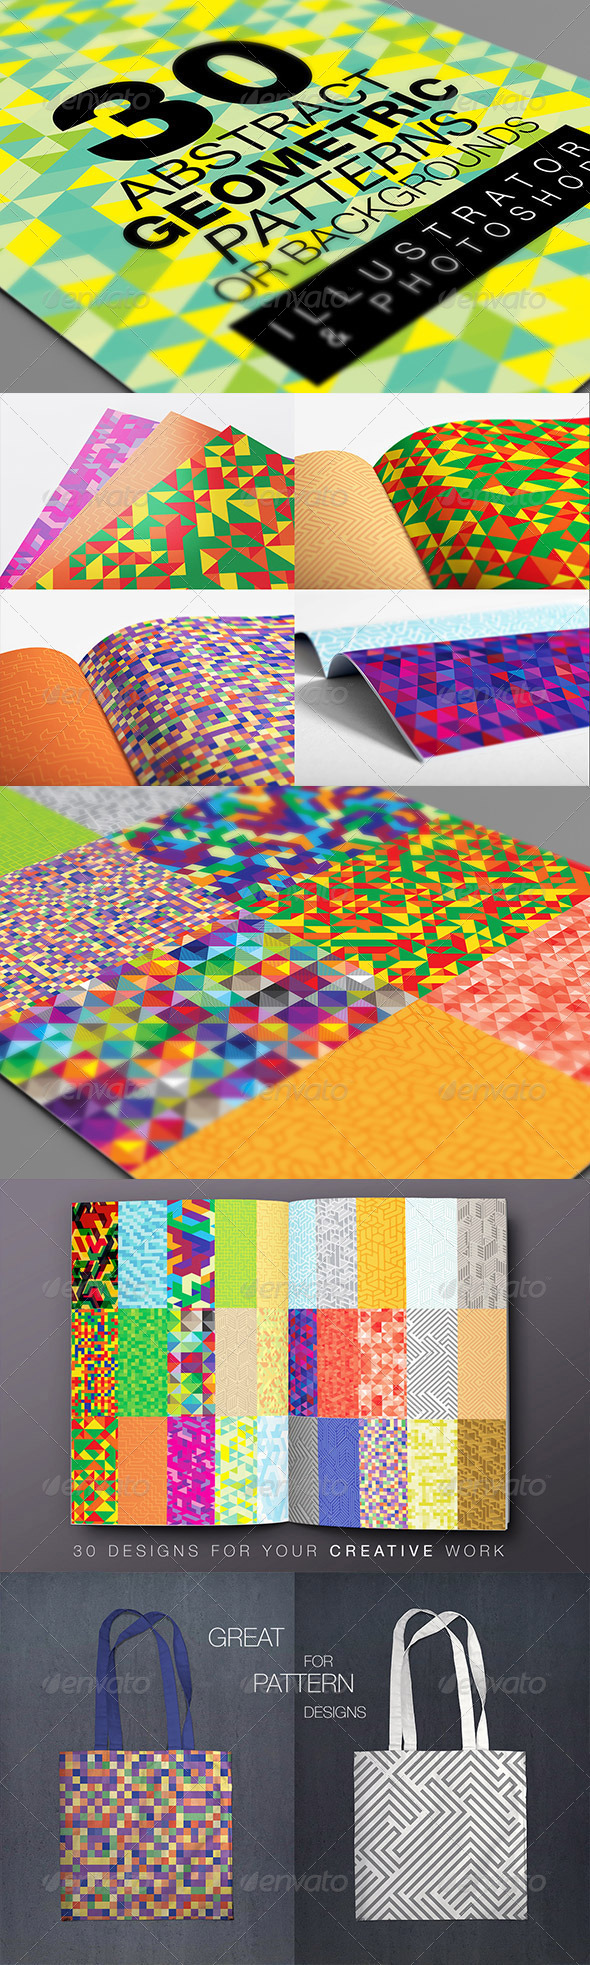 Abstract Geometric Backgrounds V.1 - Backgrounds Decorative